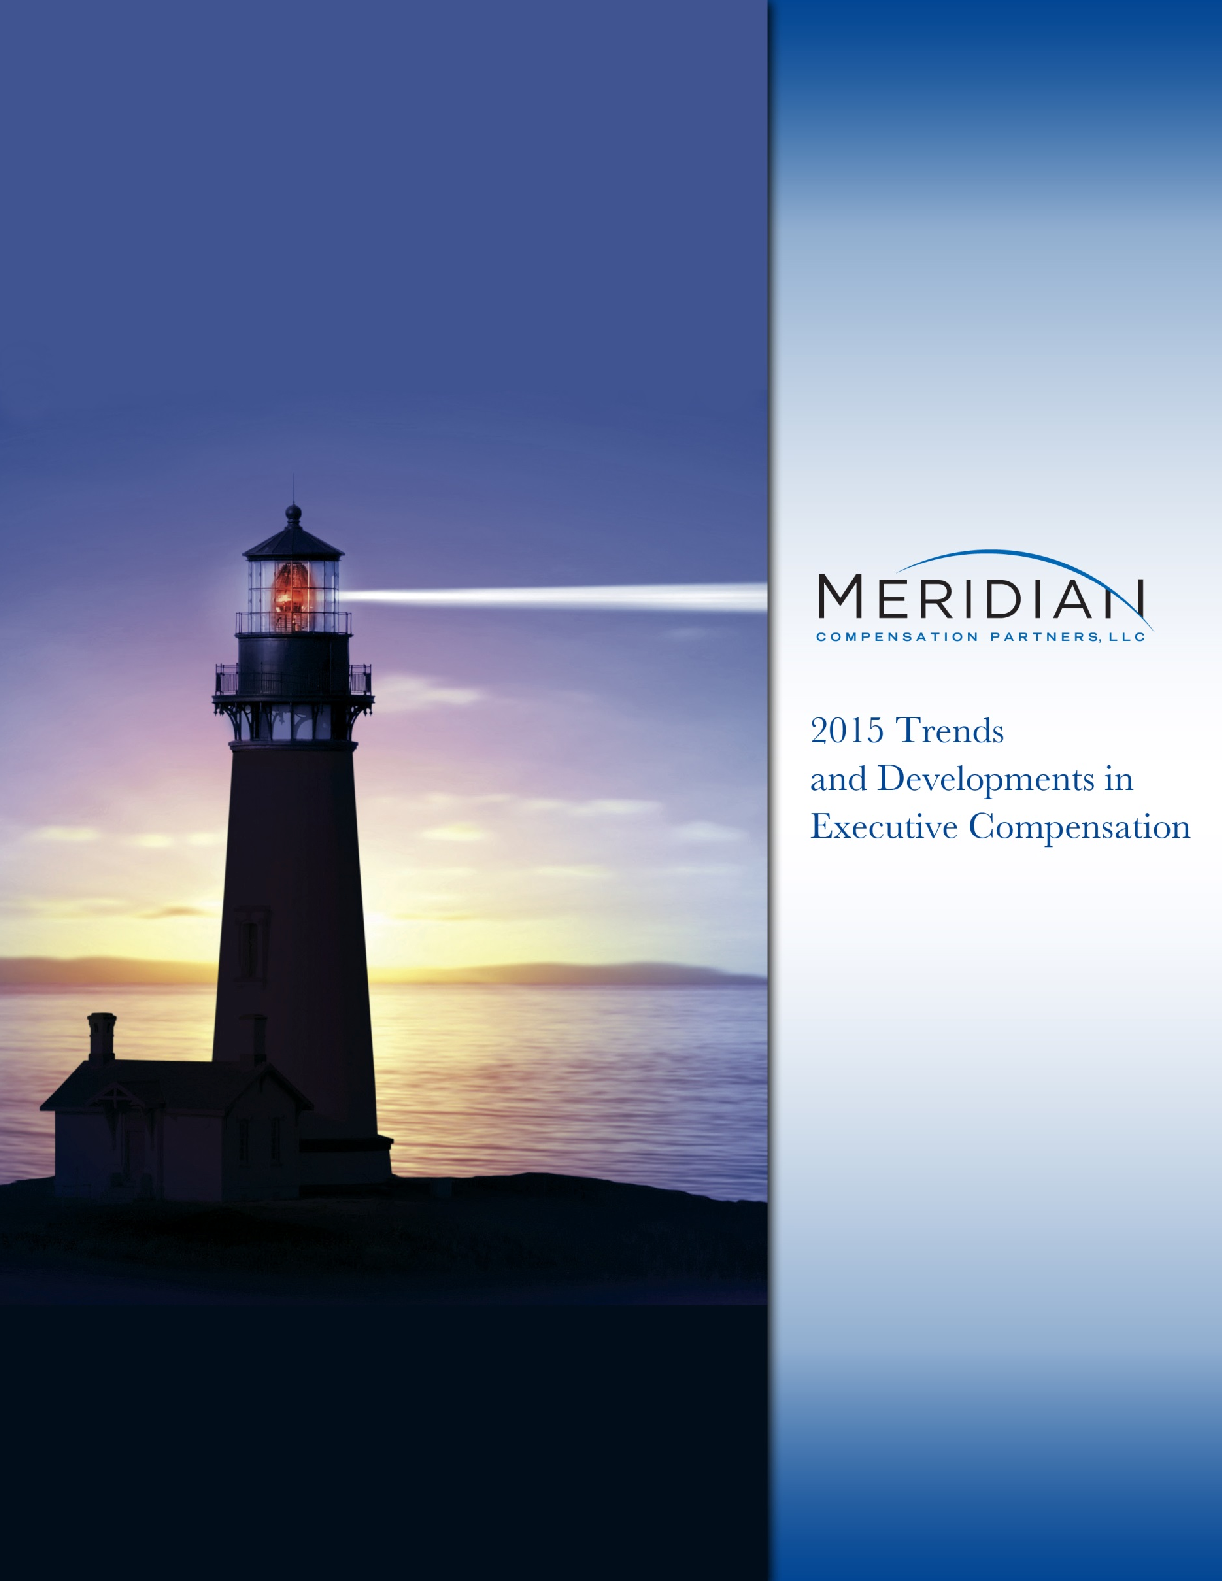 2015 Trends and Developments in Executive Compensation (PDF)